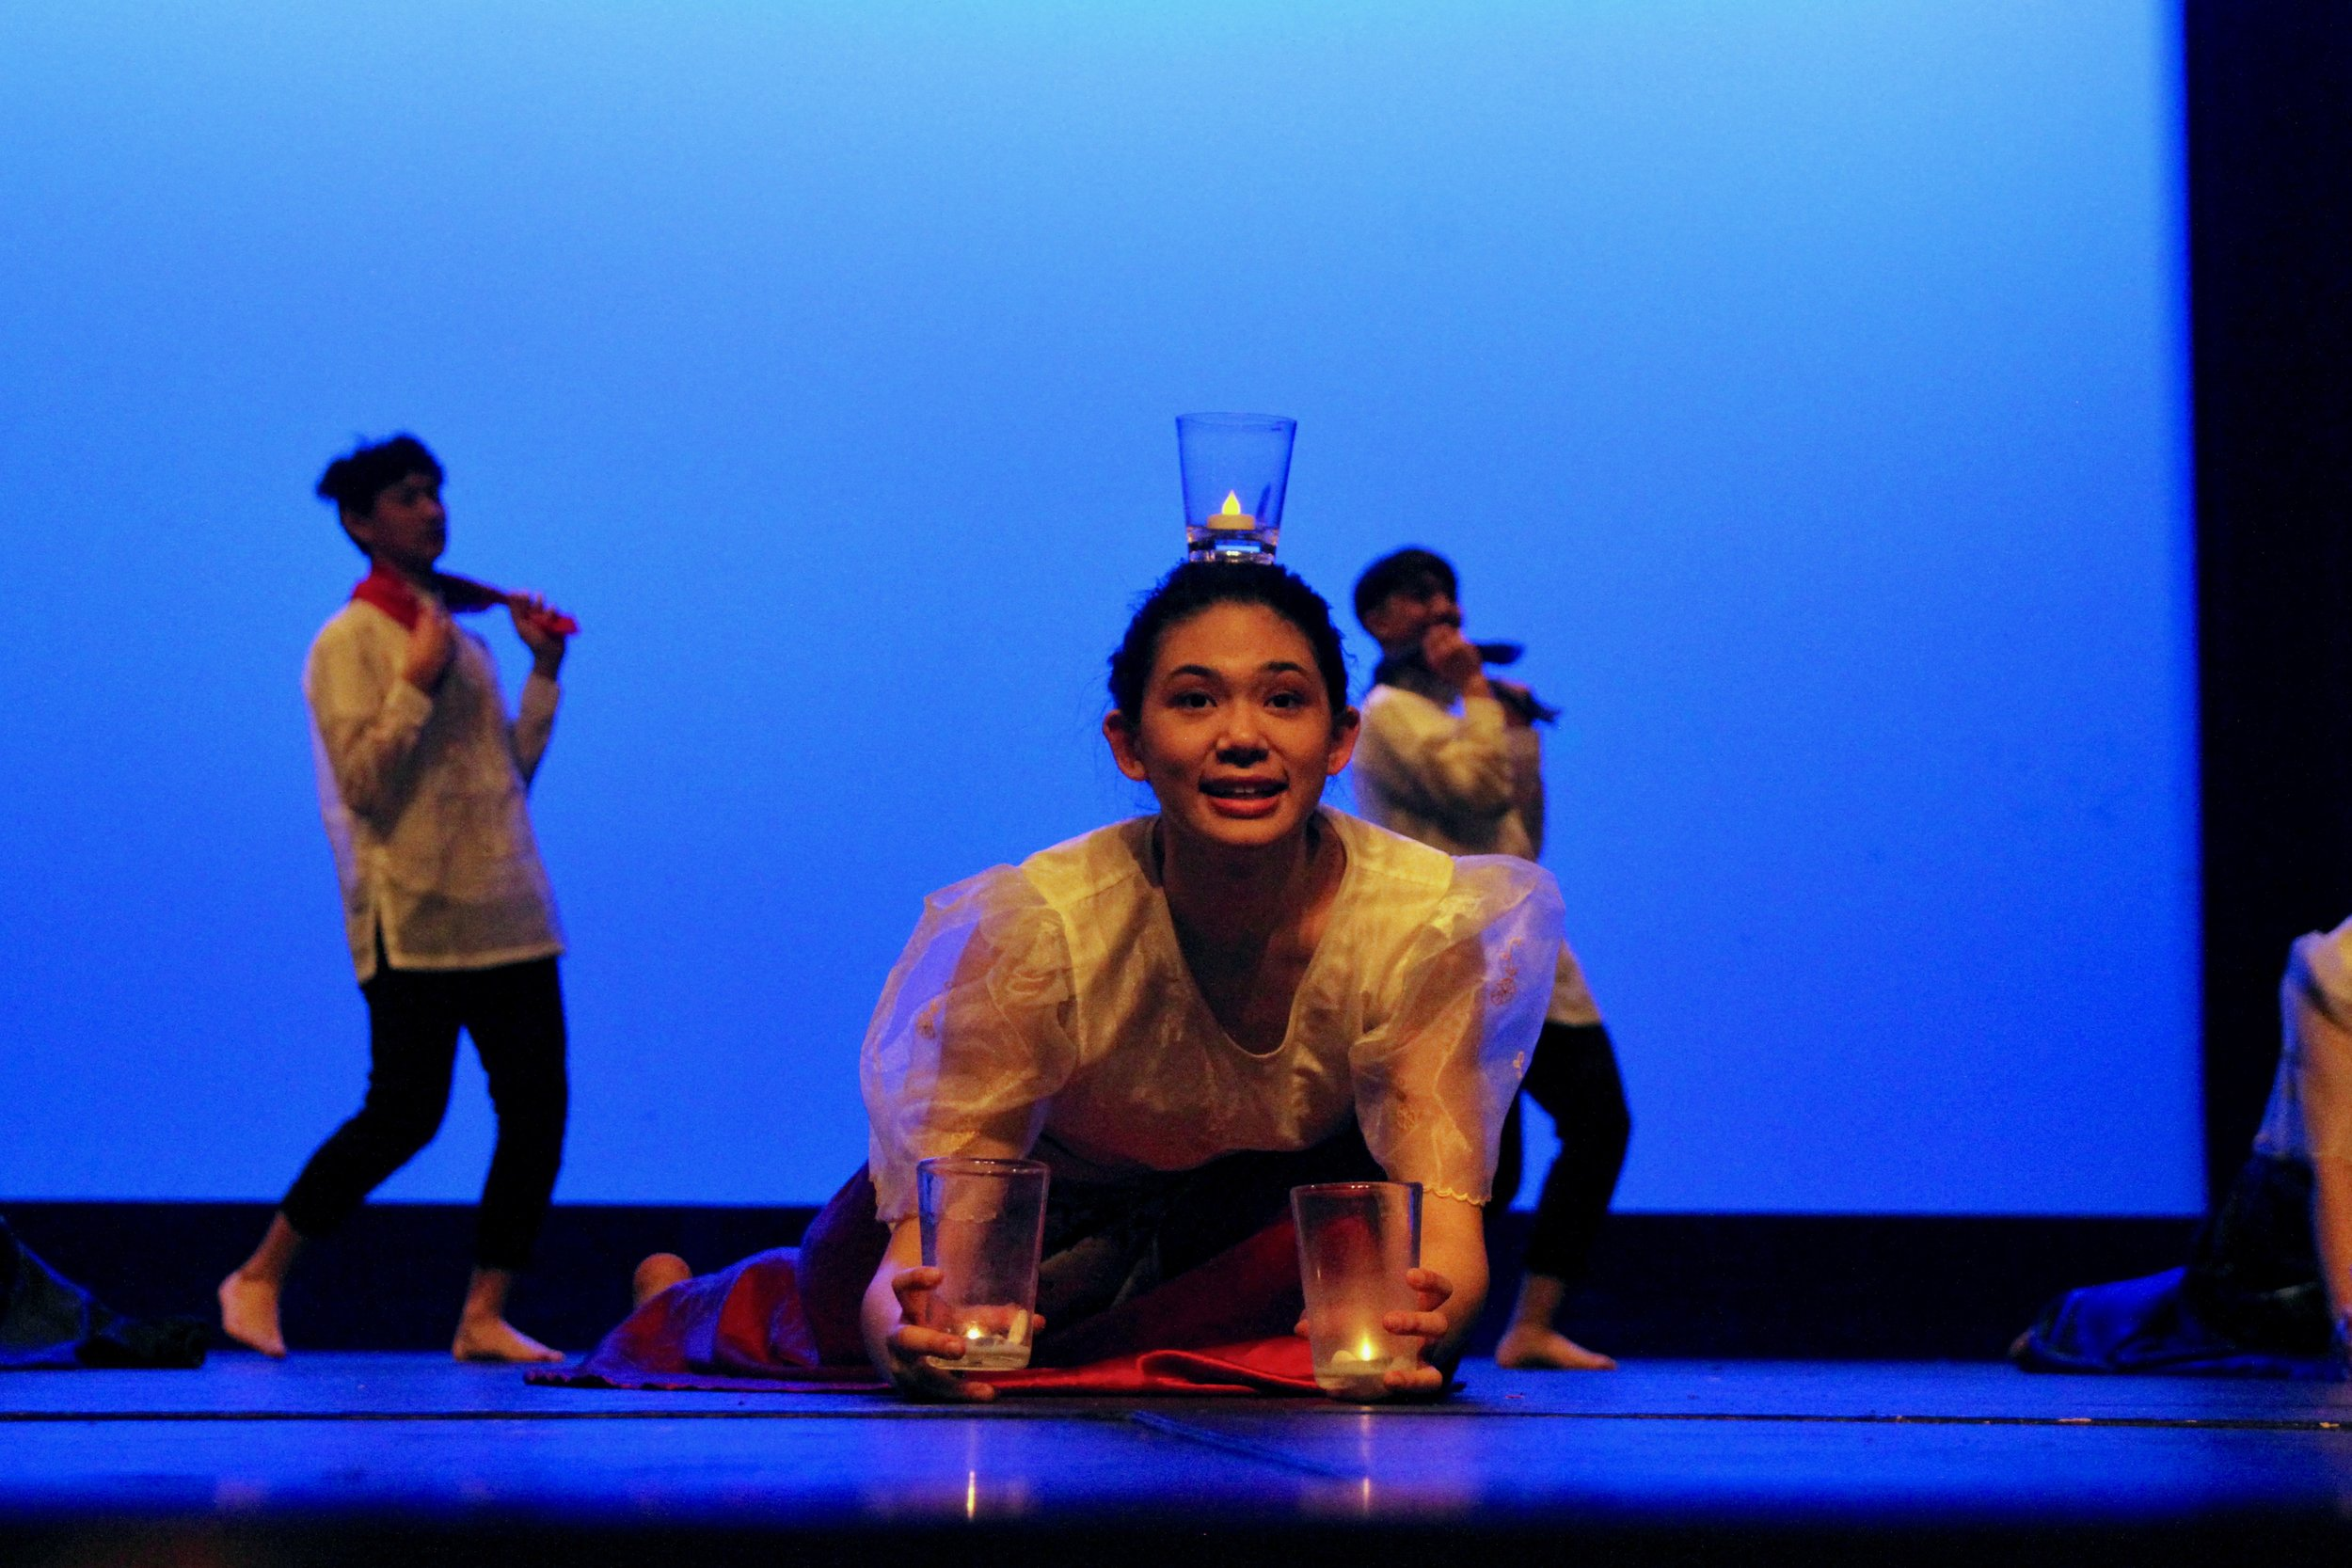 Olivia Tavas, and her fellow dancers in the first part of the dance of Isang Hakbang, carefully balance candles on their heads as they waltz around stage